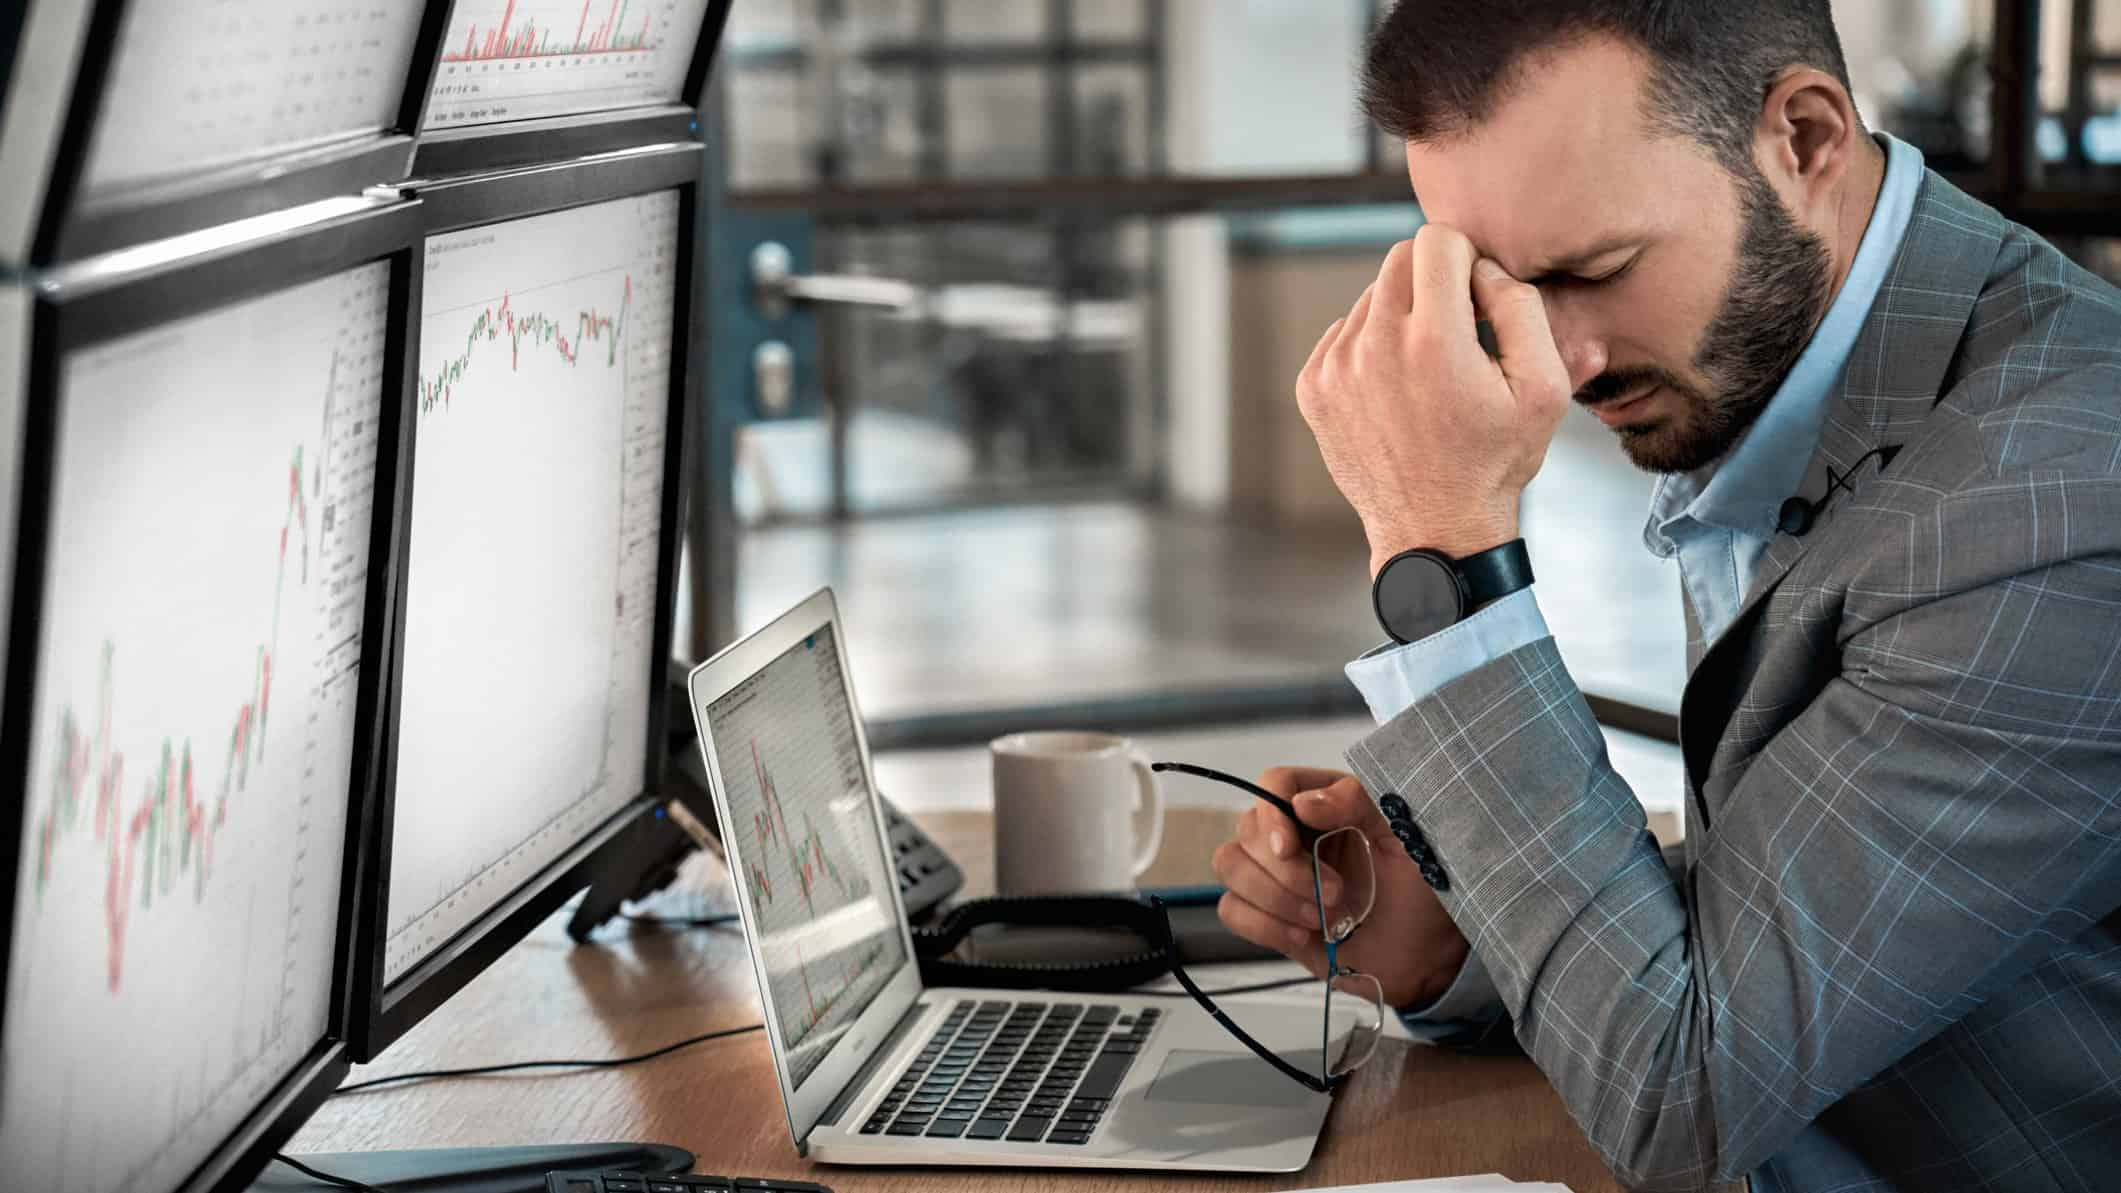 A businessman in front of a computer with his head on his hand in disbelief, indicating poor IPO or share price performance